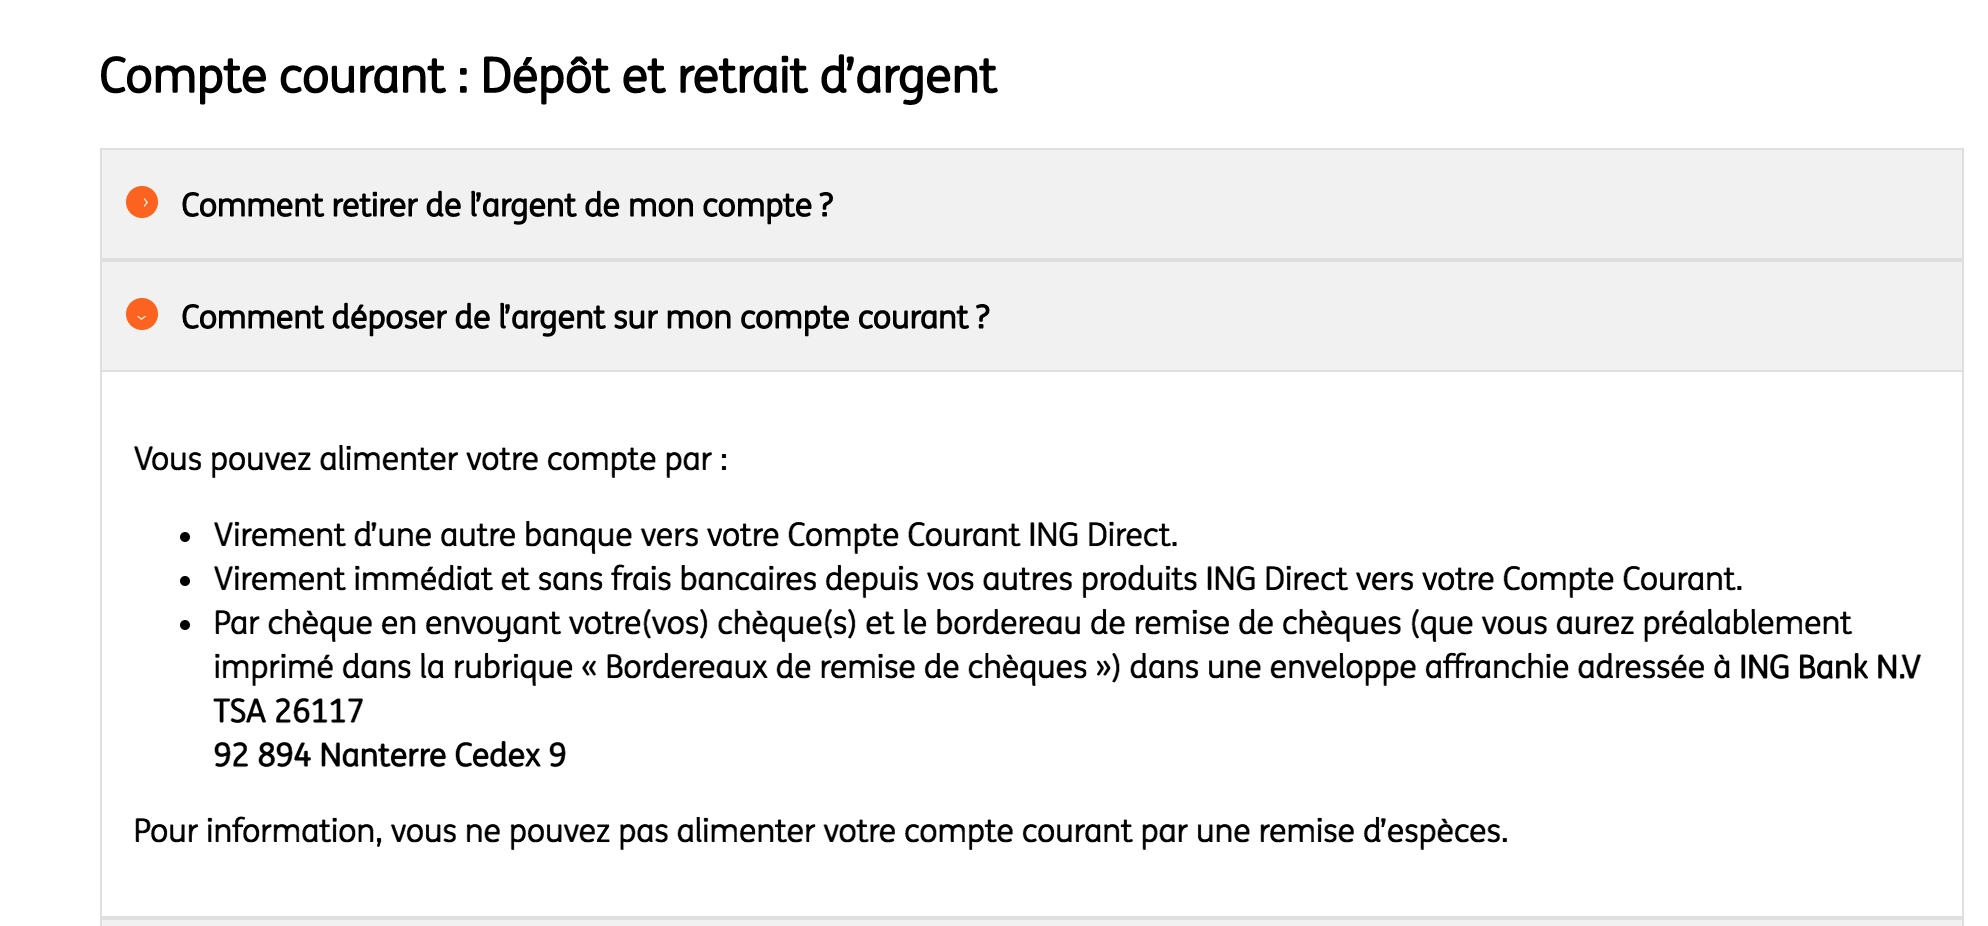 Comment créditer son compte courant ING Direct ?